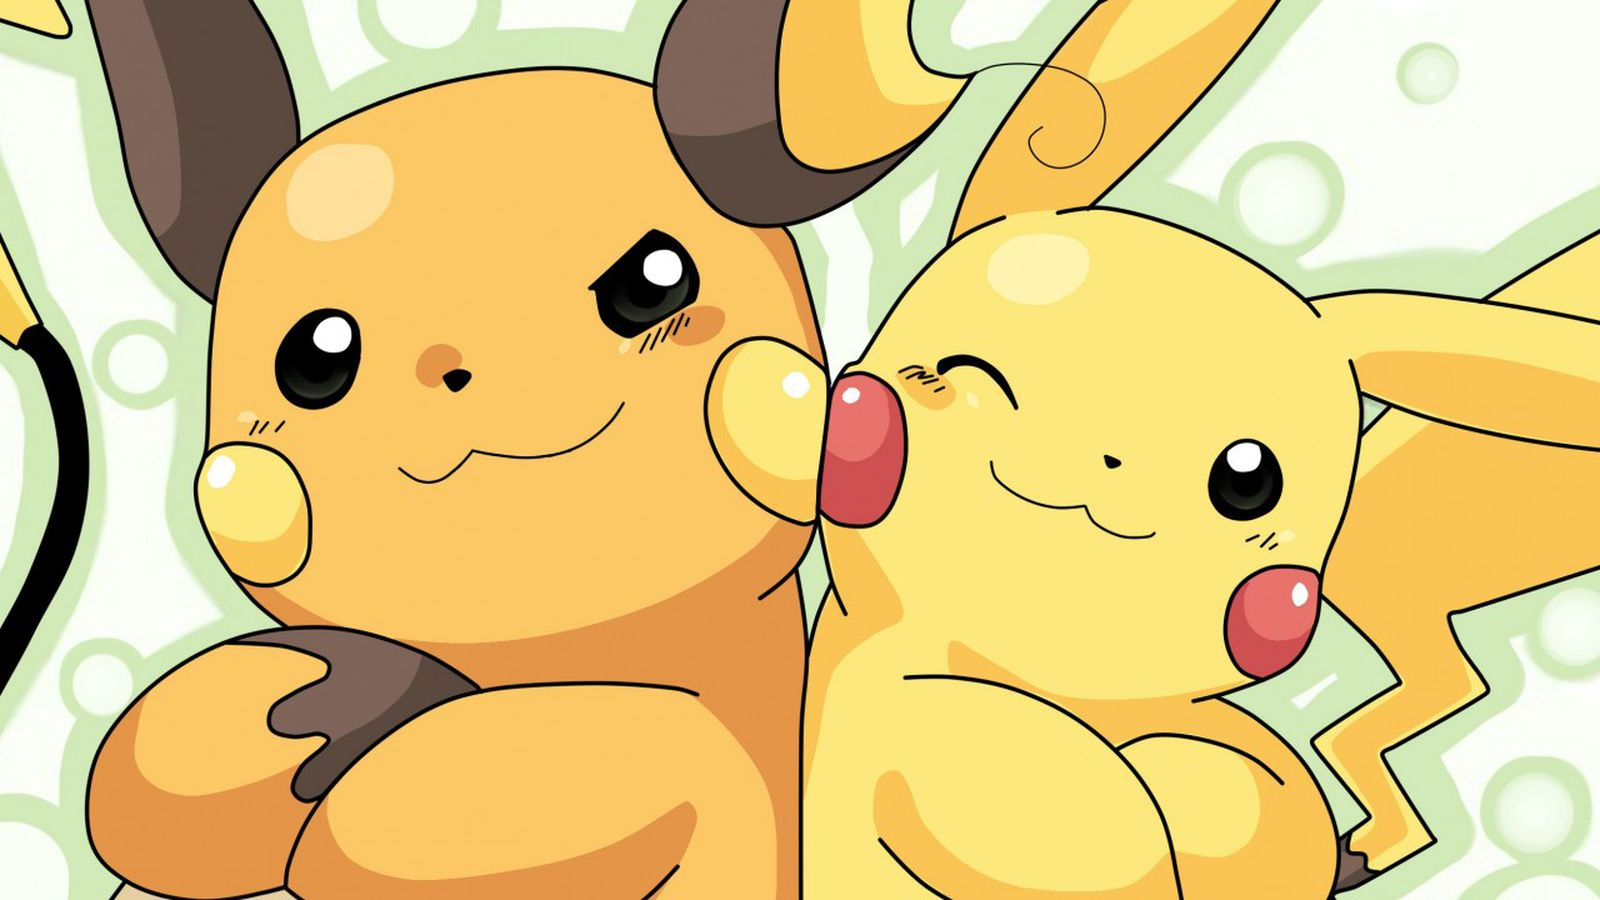 Why Pikachu May Soon Be As Iconic As Mickey Mouse